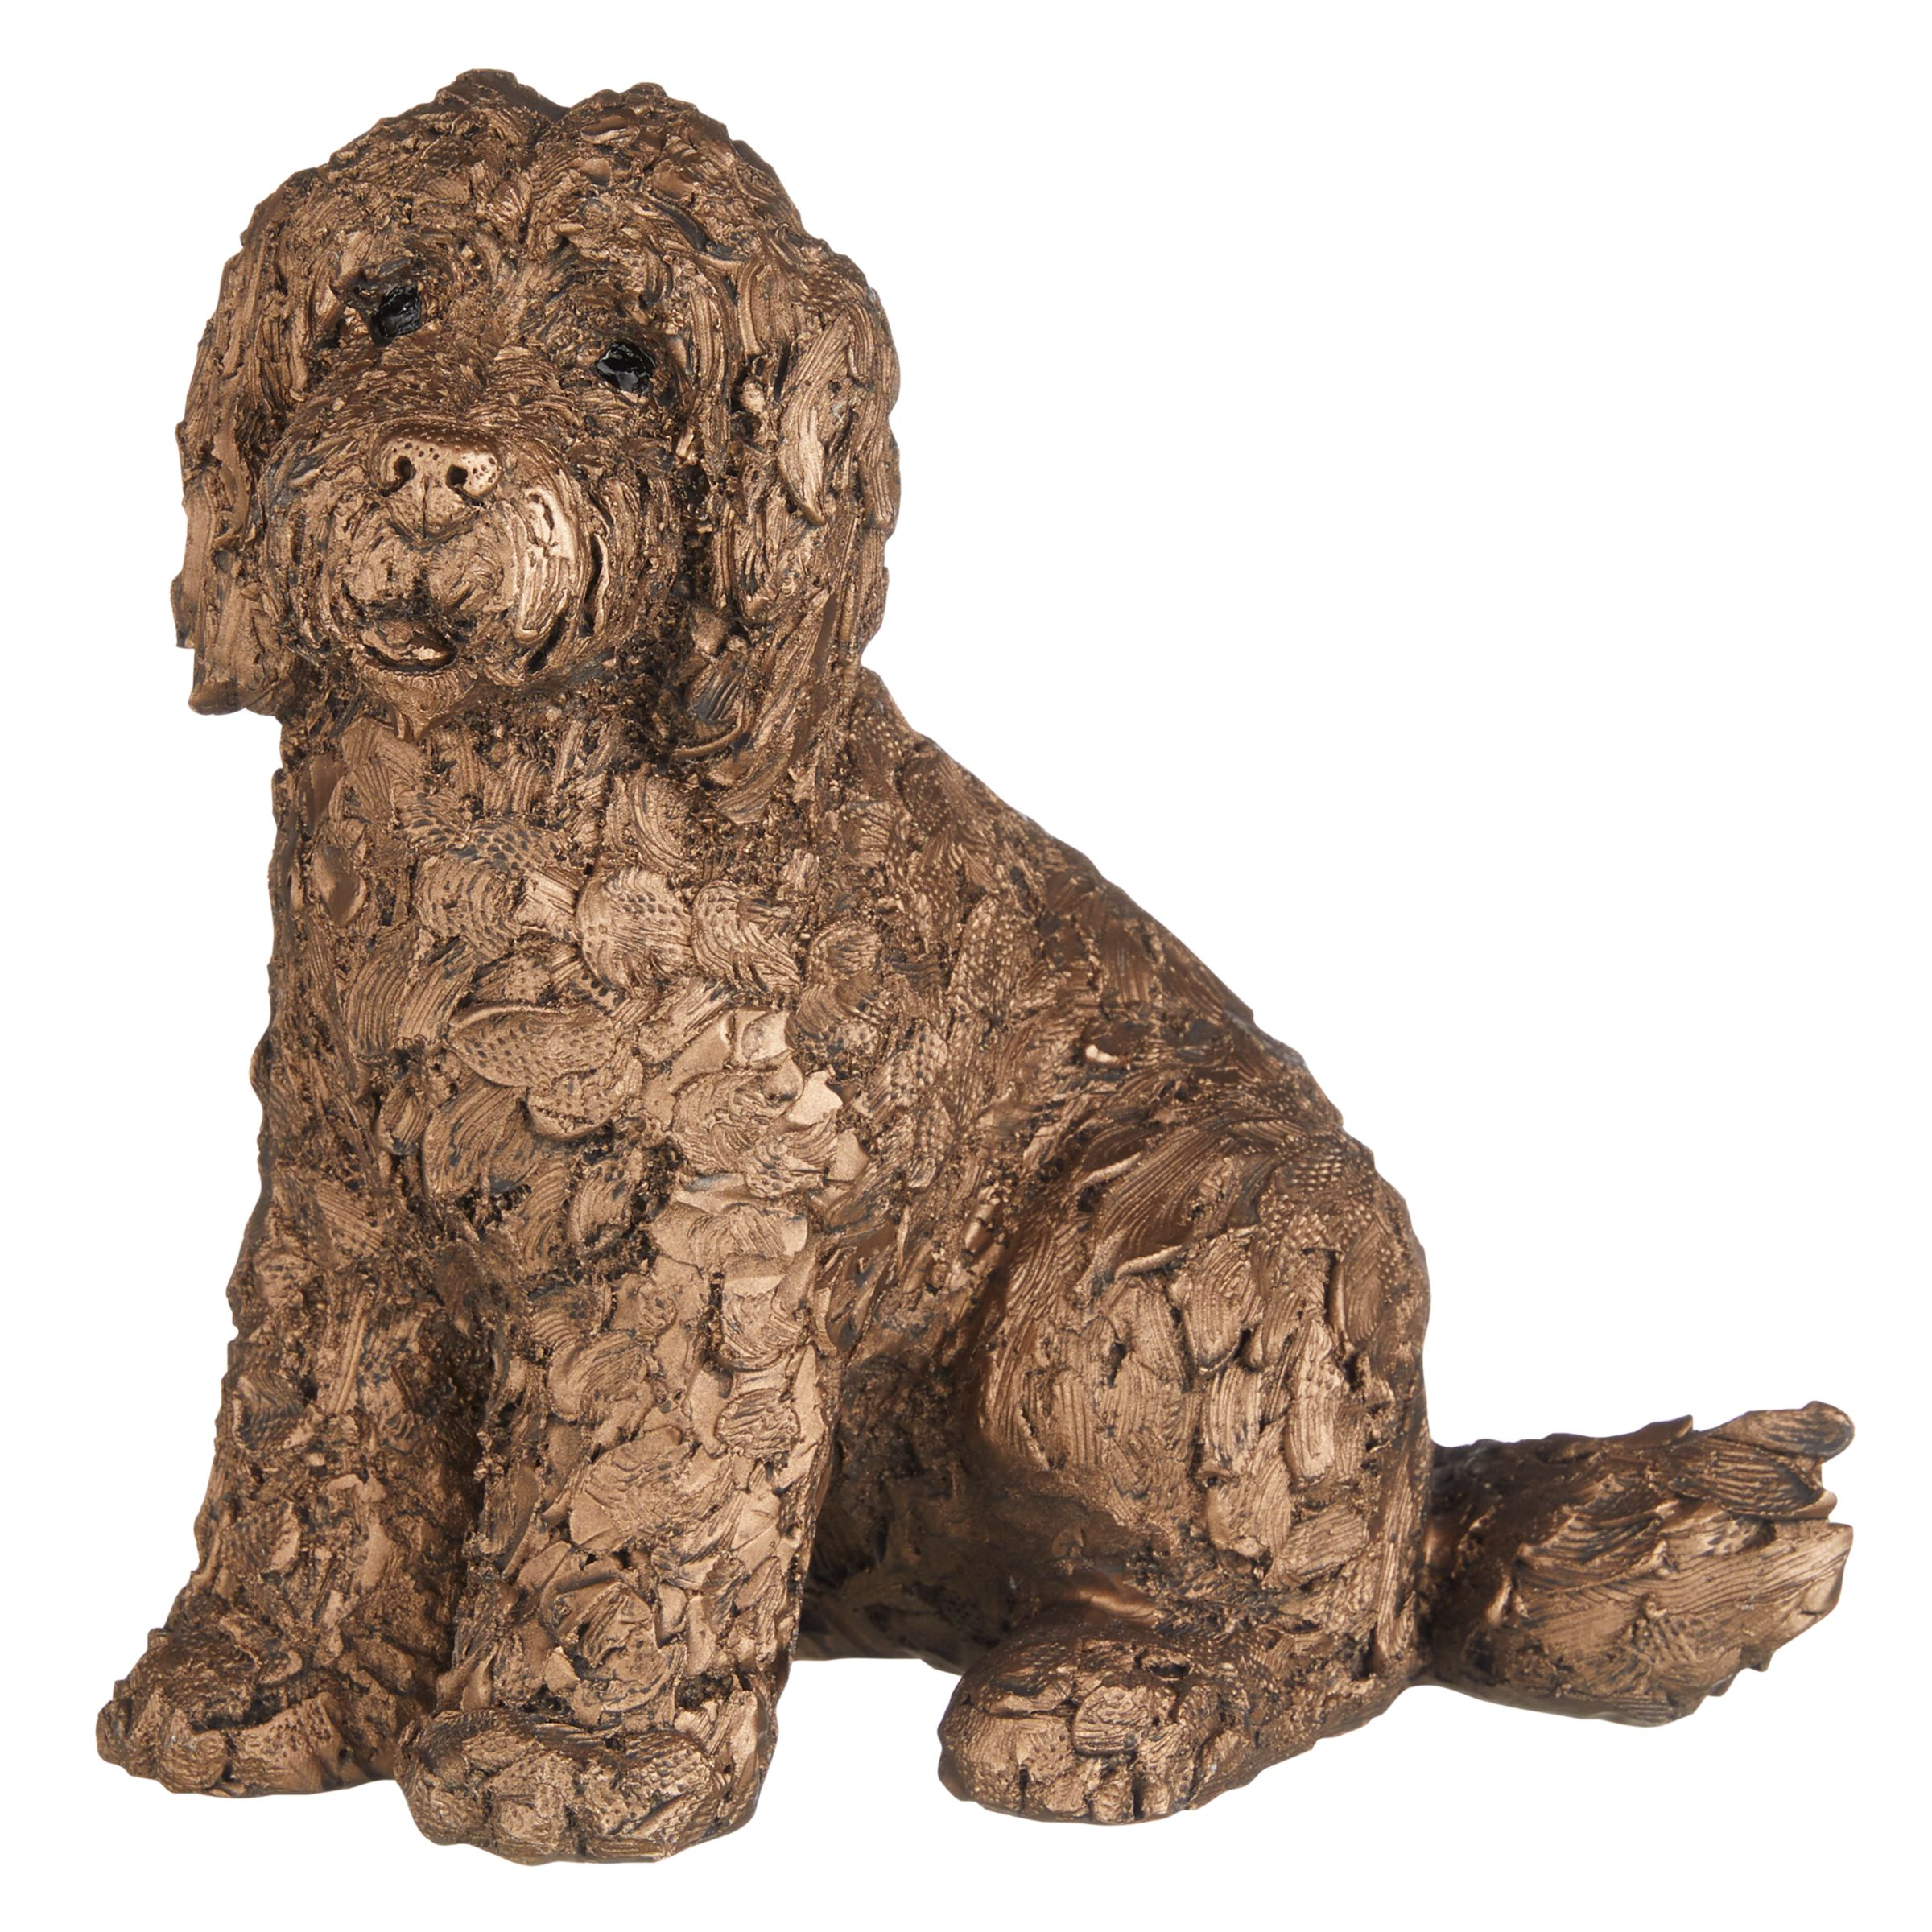 Frith Sculpture Frith Sculpture Lucy Cockapoo Dog by Adrian Tinsley, H20cm, Bronze